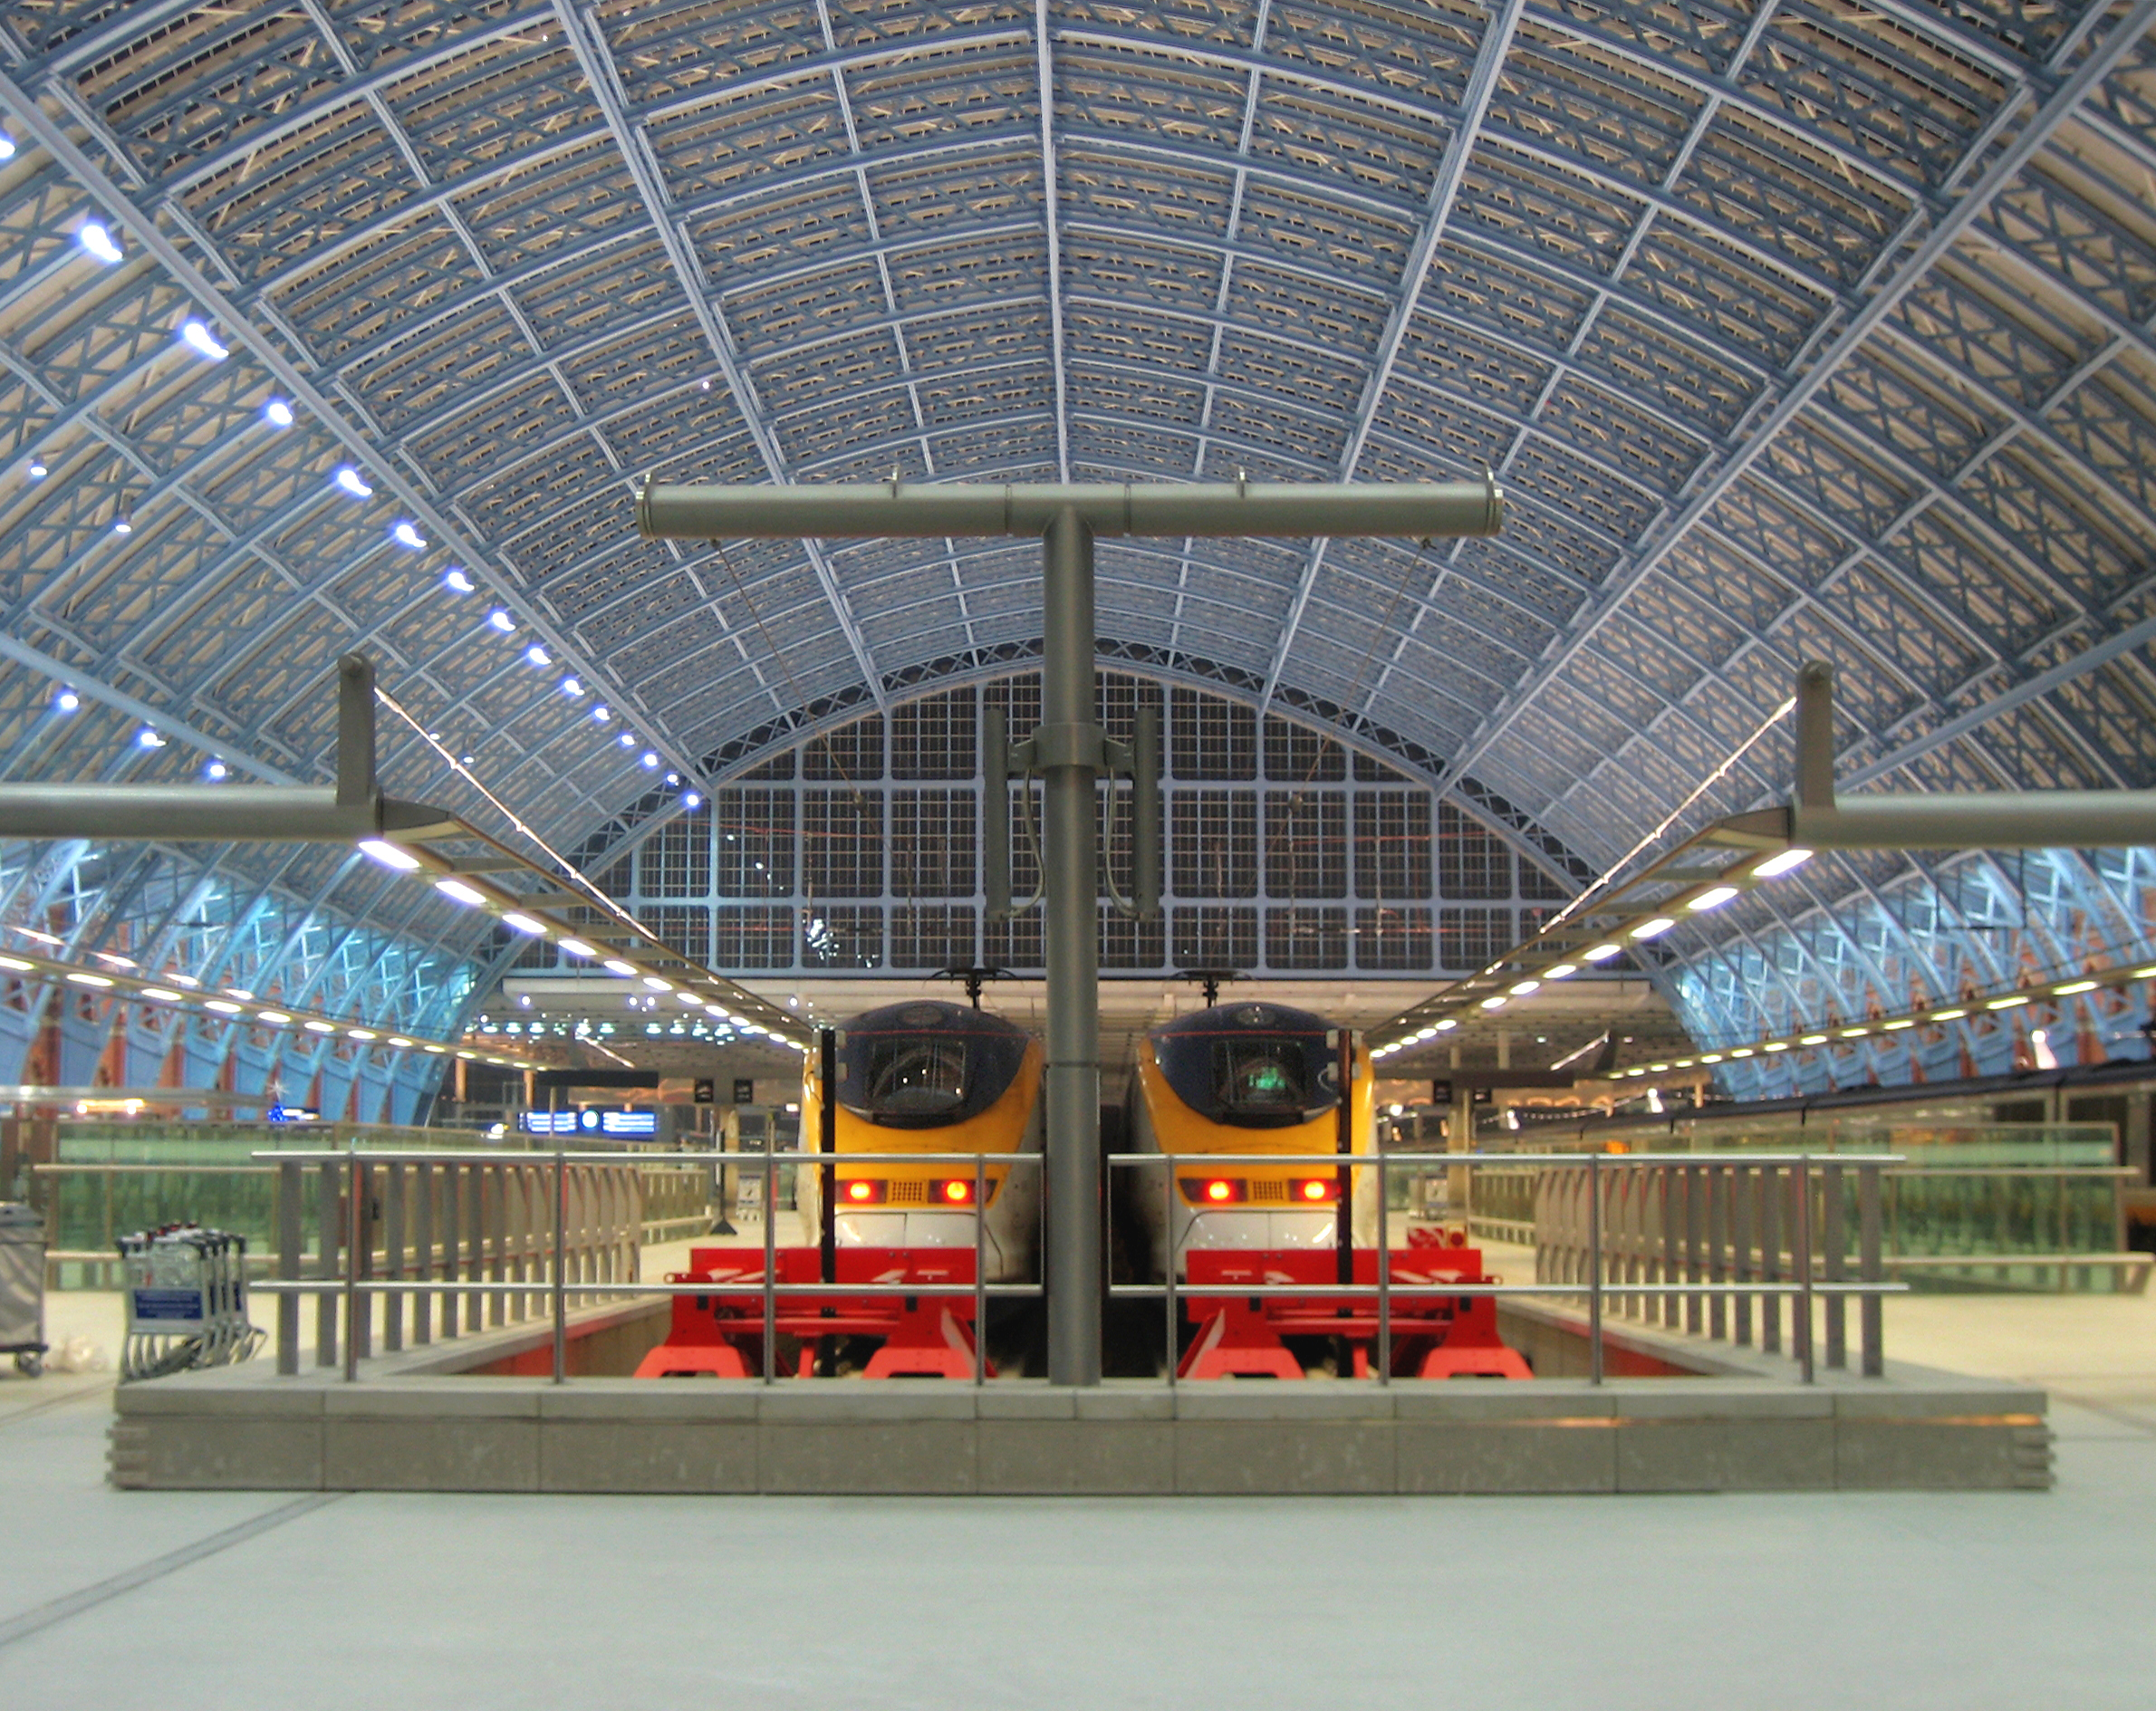 Eurostar at London St Pancras